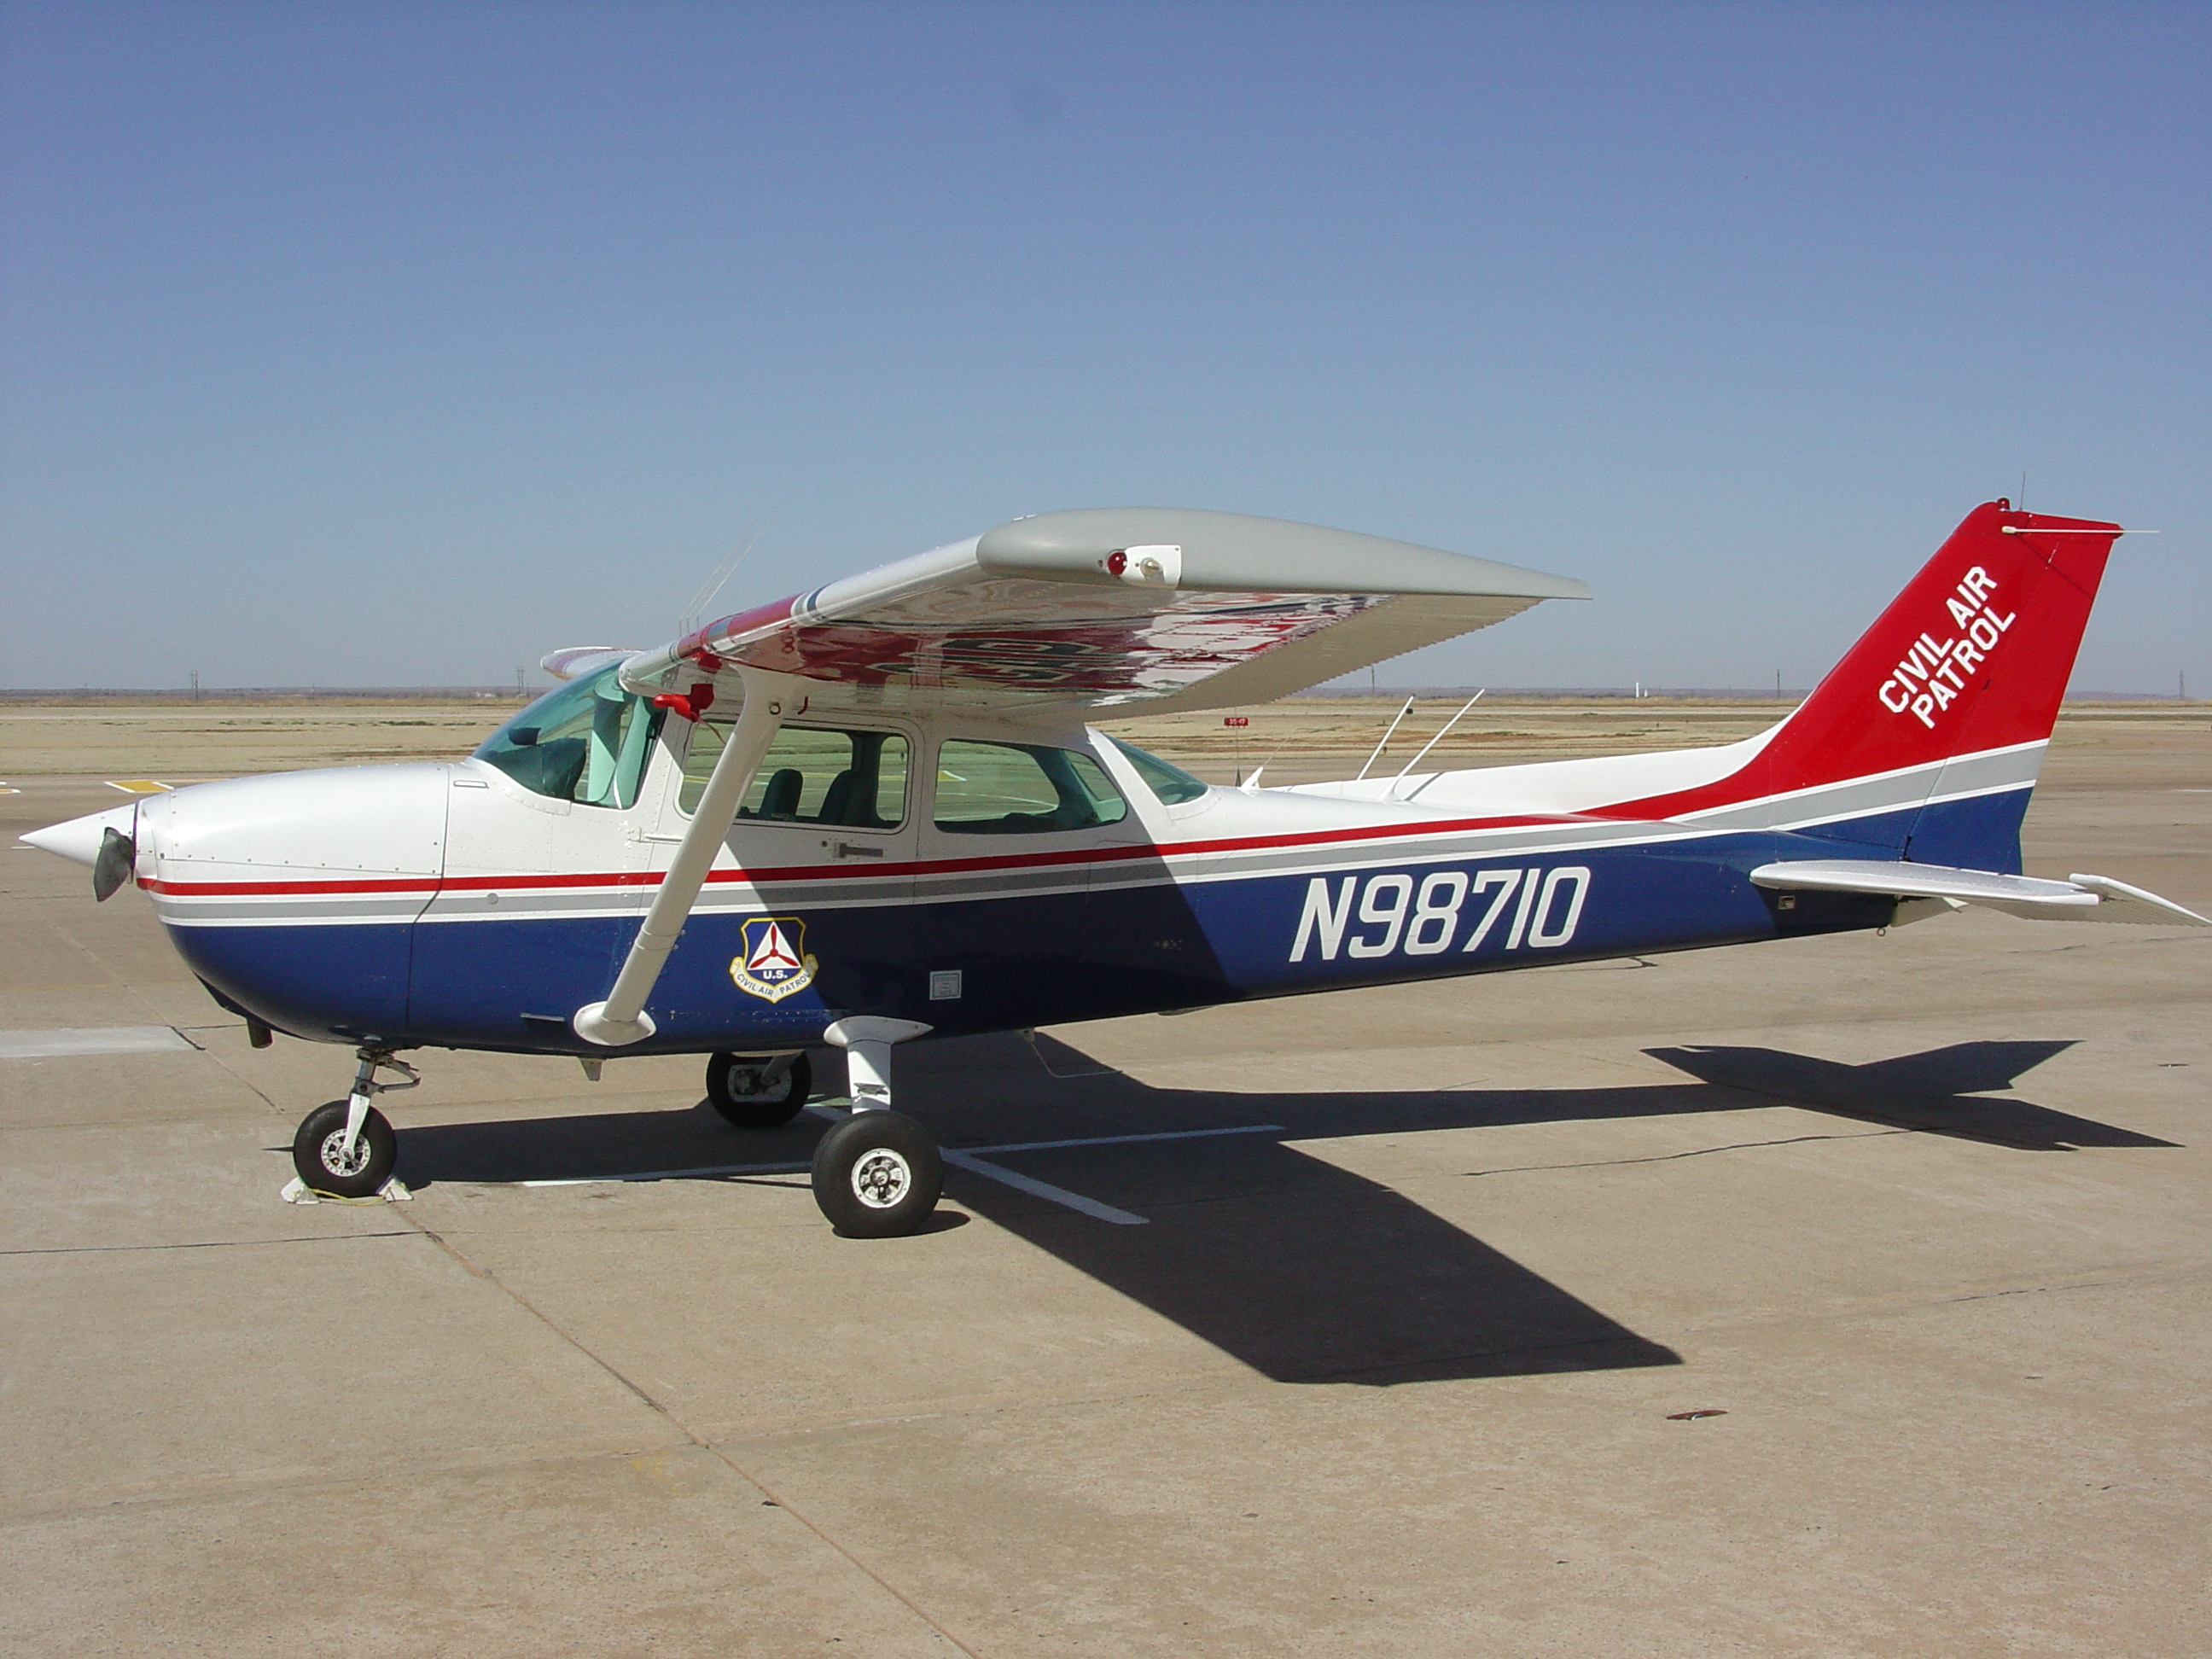 File:Civil Air Patrol Cessna 172 on flight line.jpg